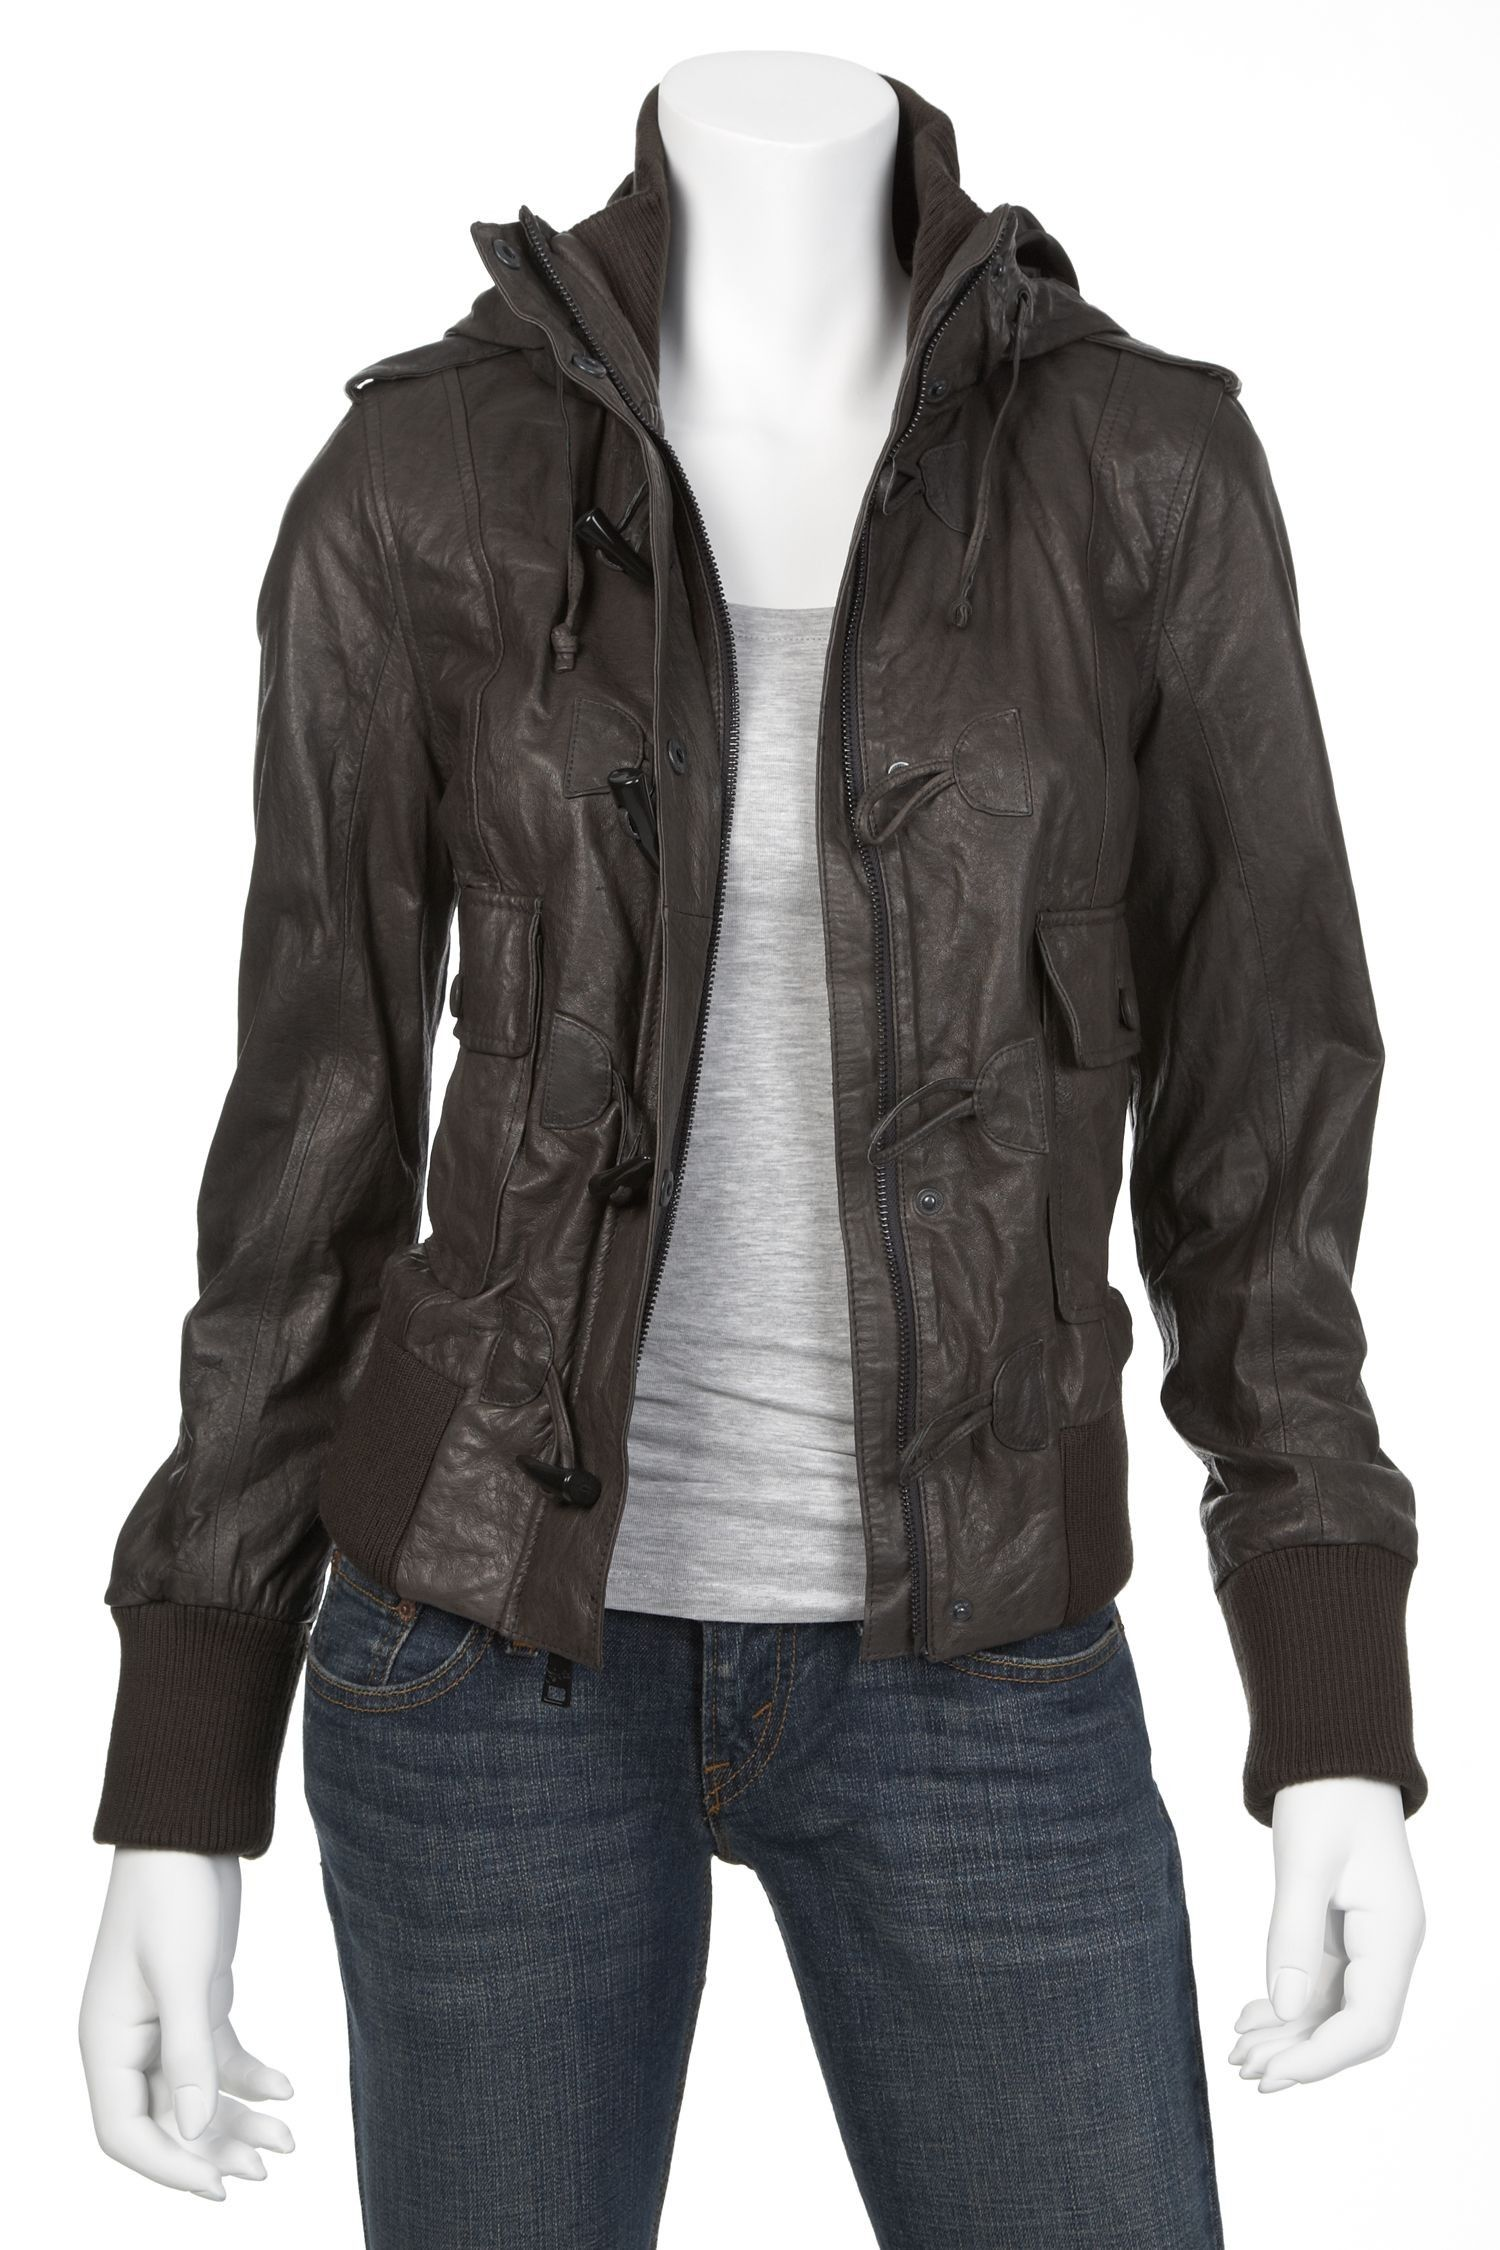 Levi&39s womens leather jacket buy leather levi&39s jackets online